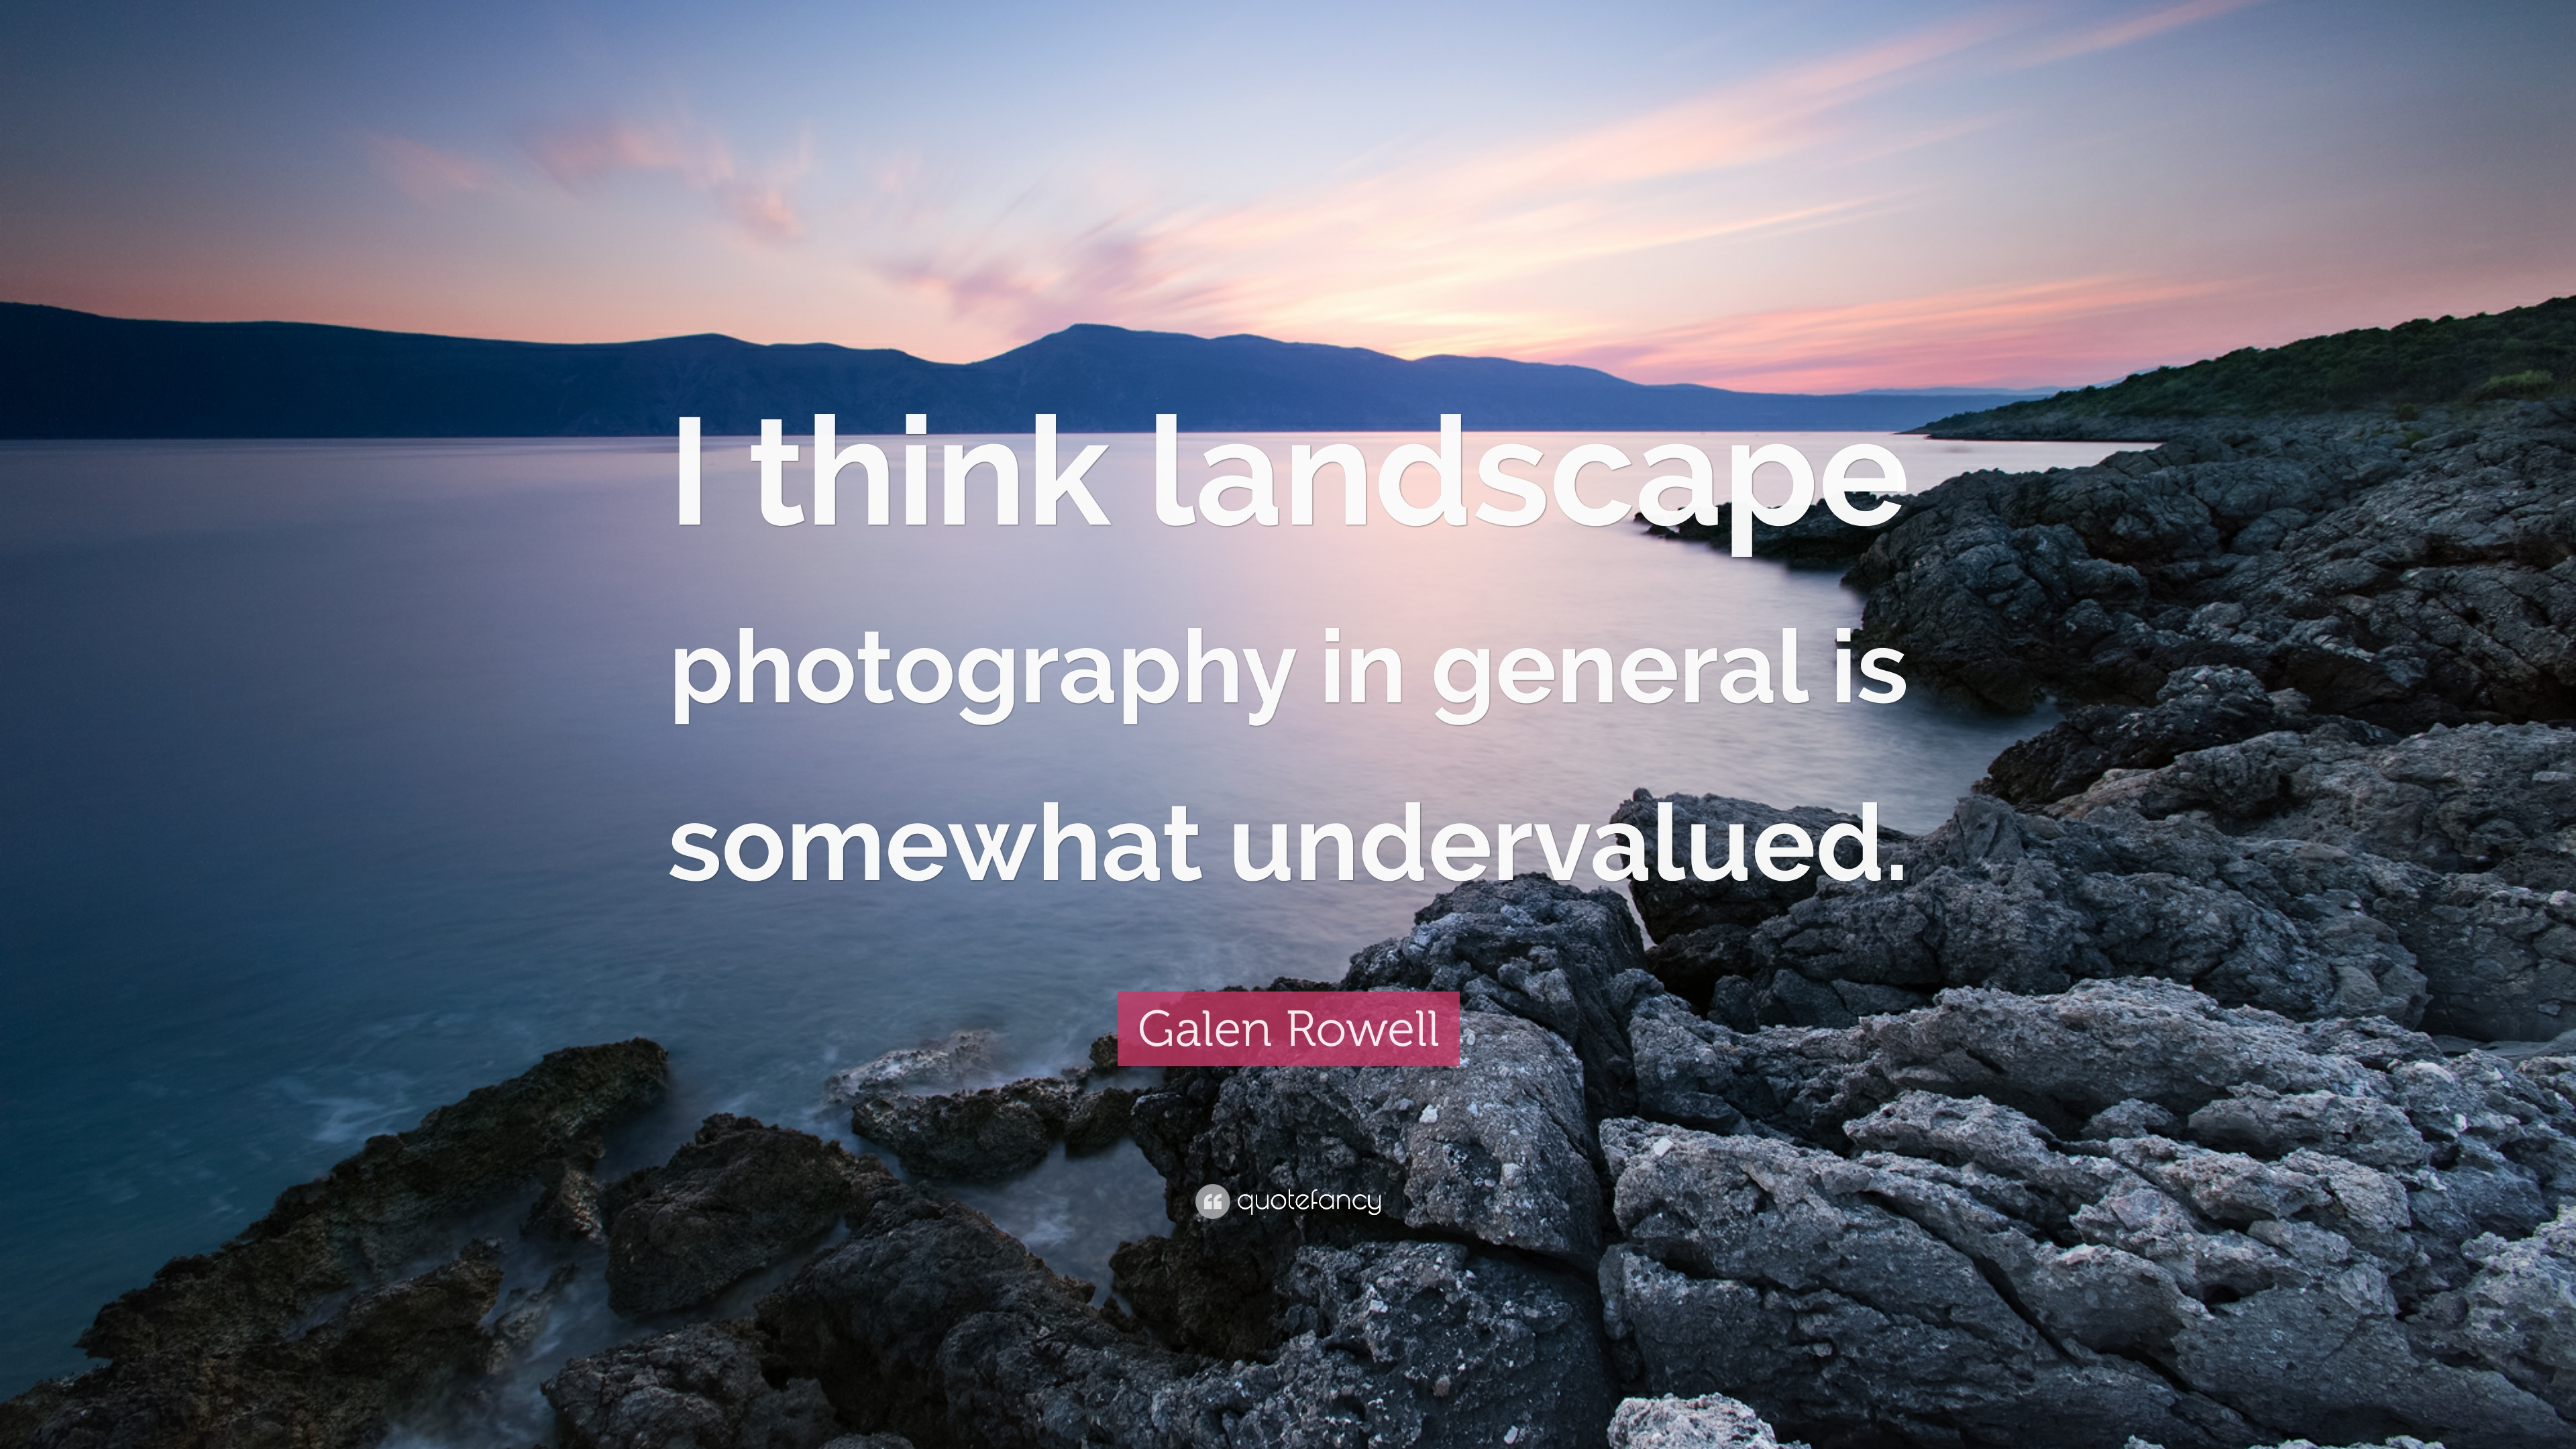 images?q=tbn:ANd9GcQh_l3eQ5xwiPy07kGEXjmjgmBKBRB7H2mRxCGhv1tFWg5c_mWT Get Inspired For Landscape Photography Quote @capturingmomentsphotography.net